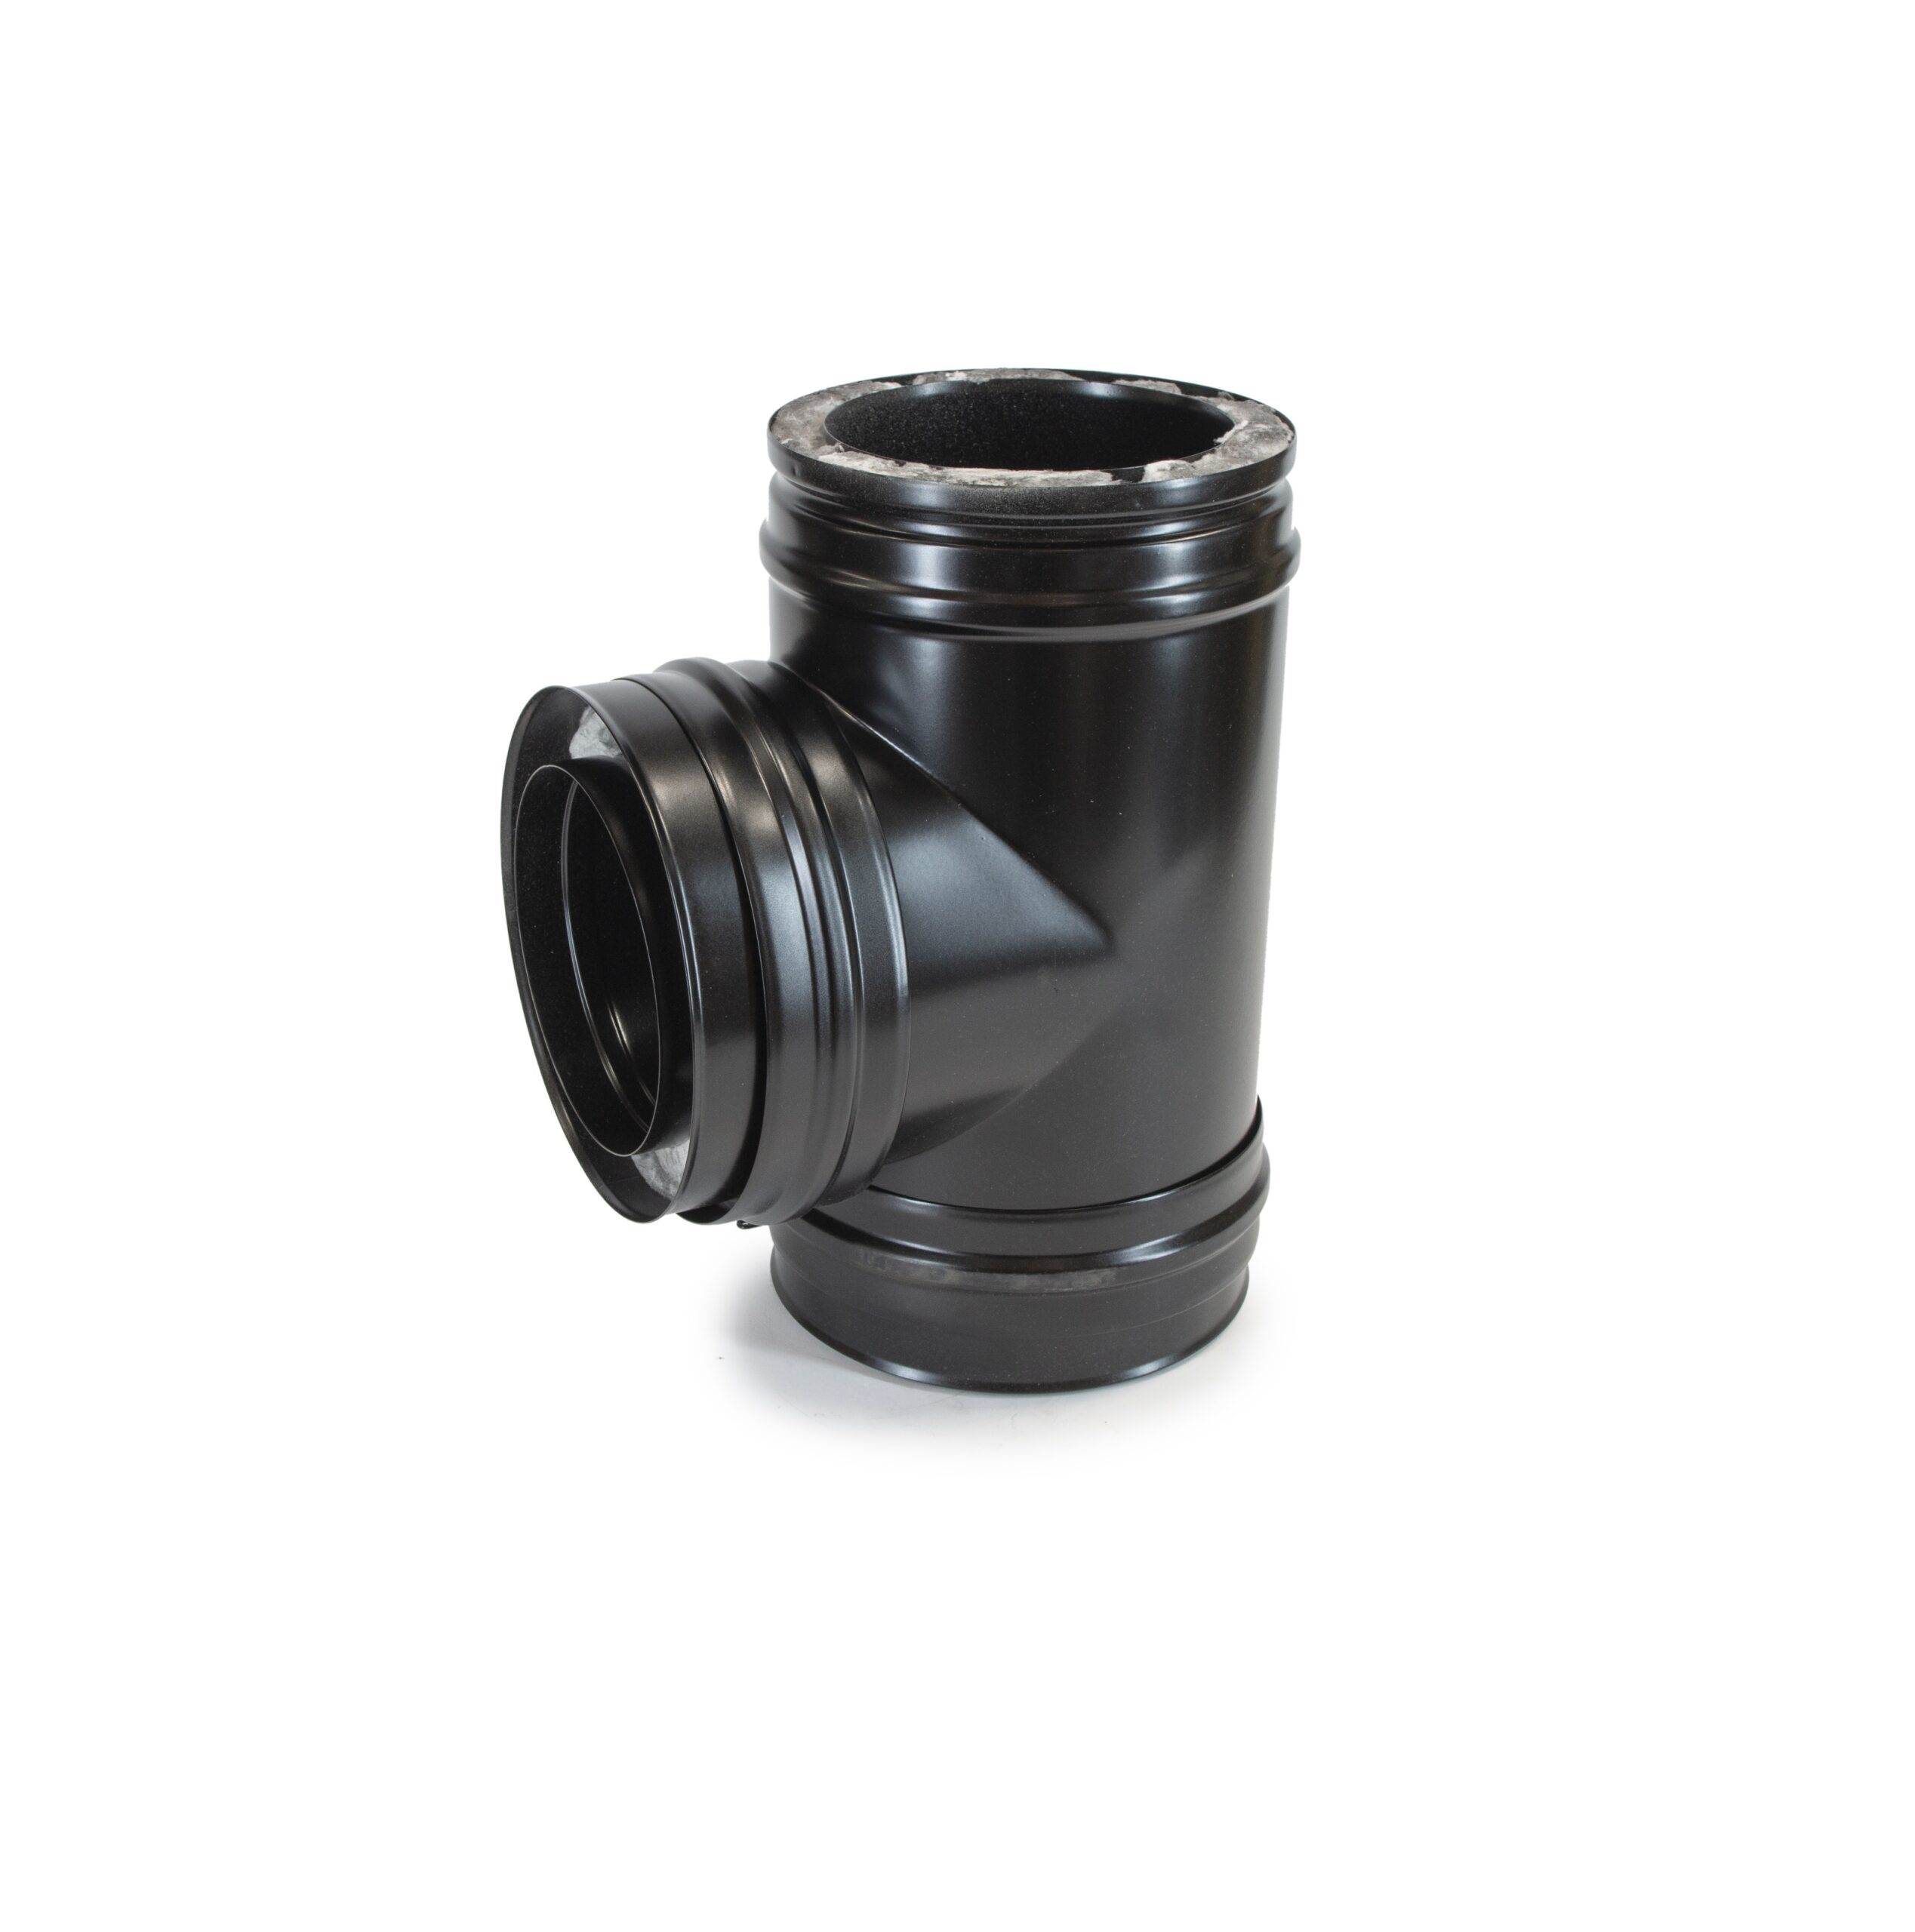 90° Tee - Schiedel ICS Twin Wall Flue - Black Powder Coated